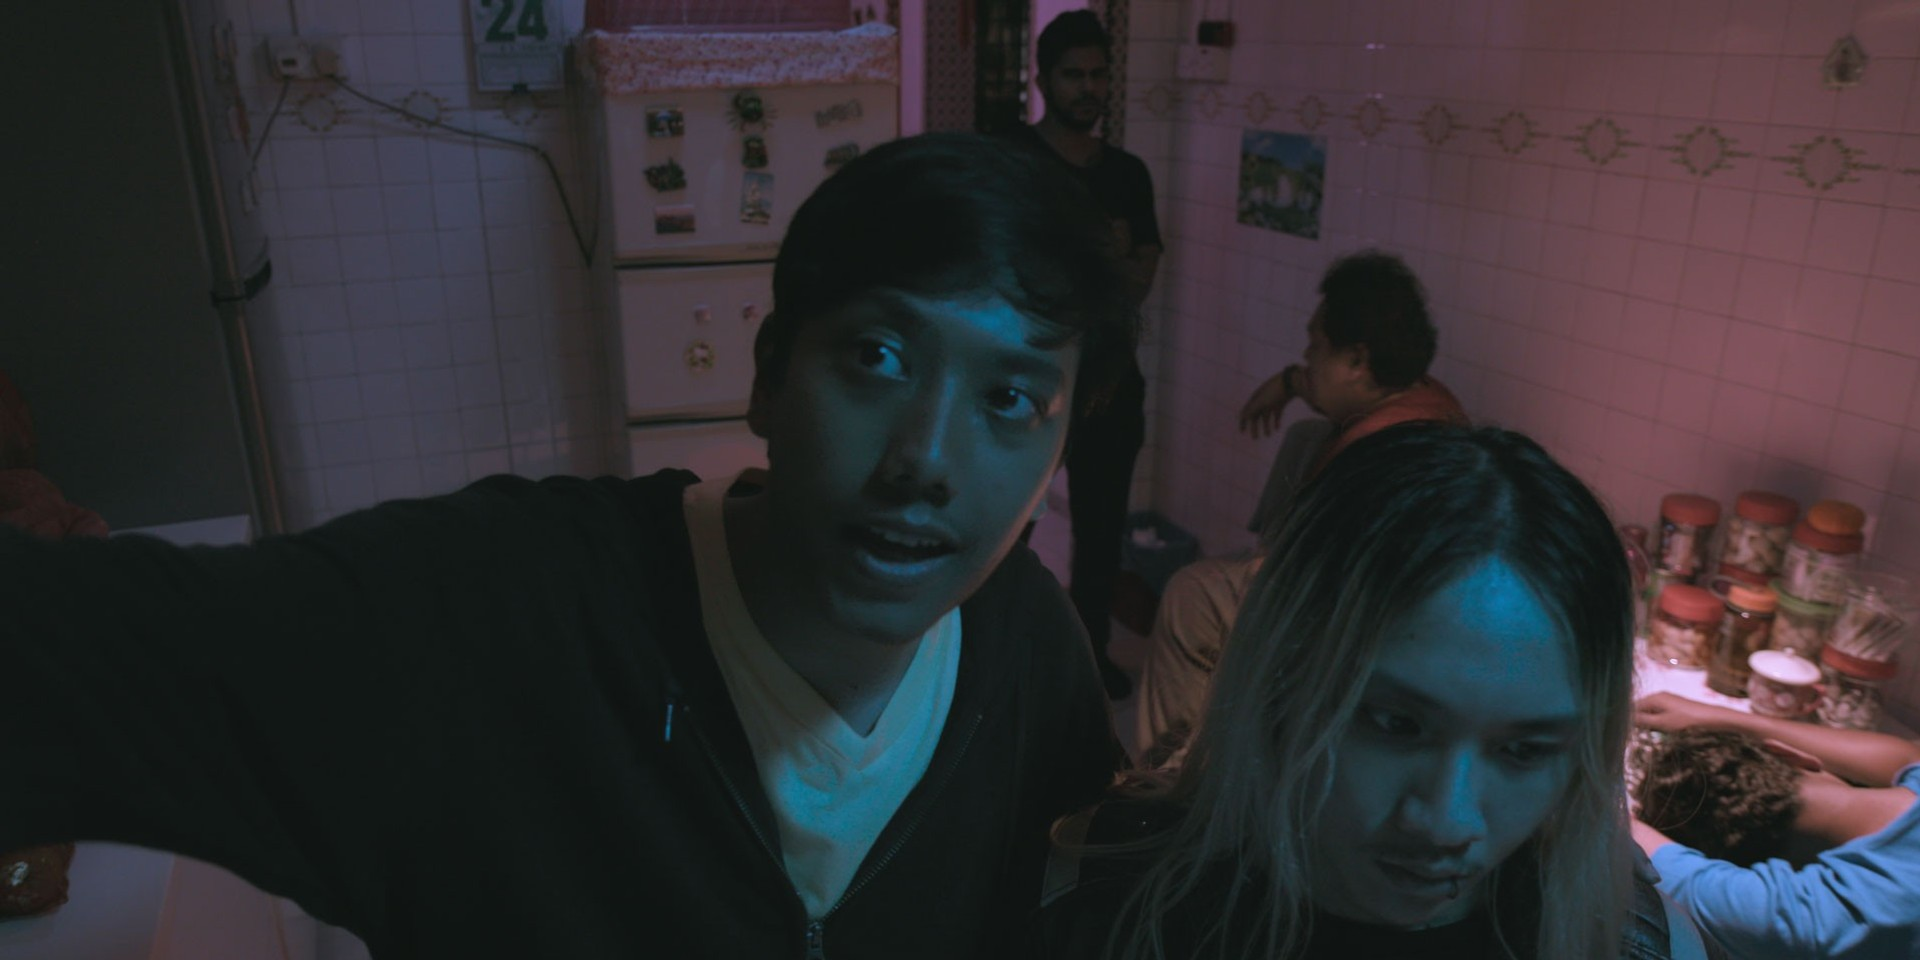 Check out this new crime/comedy short film Damaged On The Inside with cameos from Take-Off